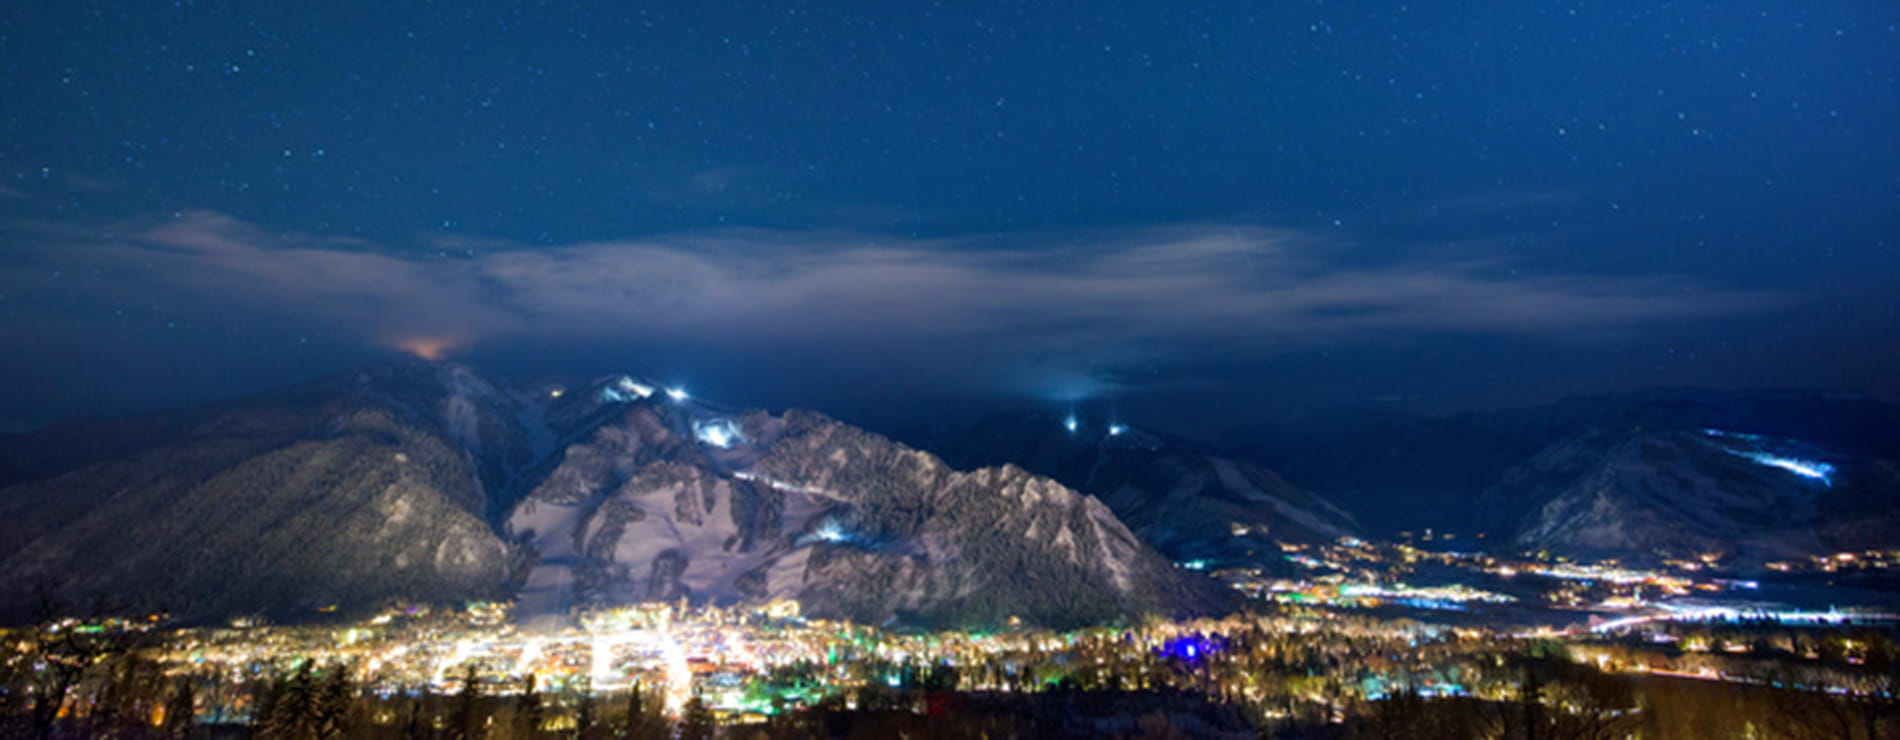 Aspen at Night - Lights on the Hill | Limelight Hotels